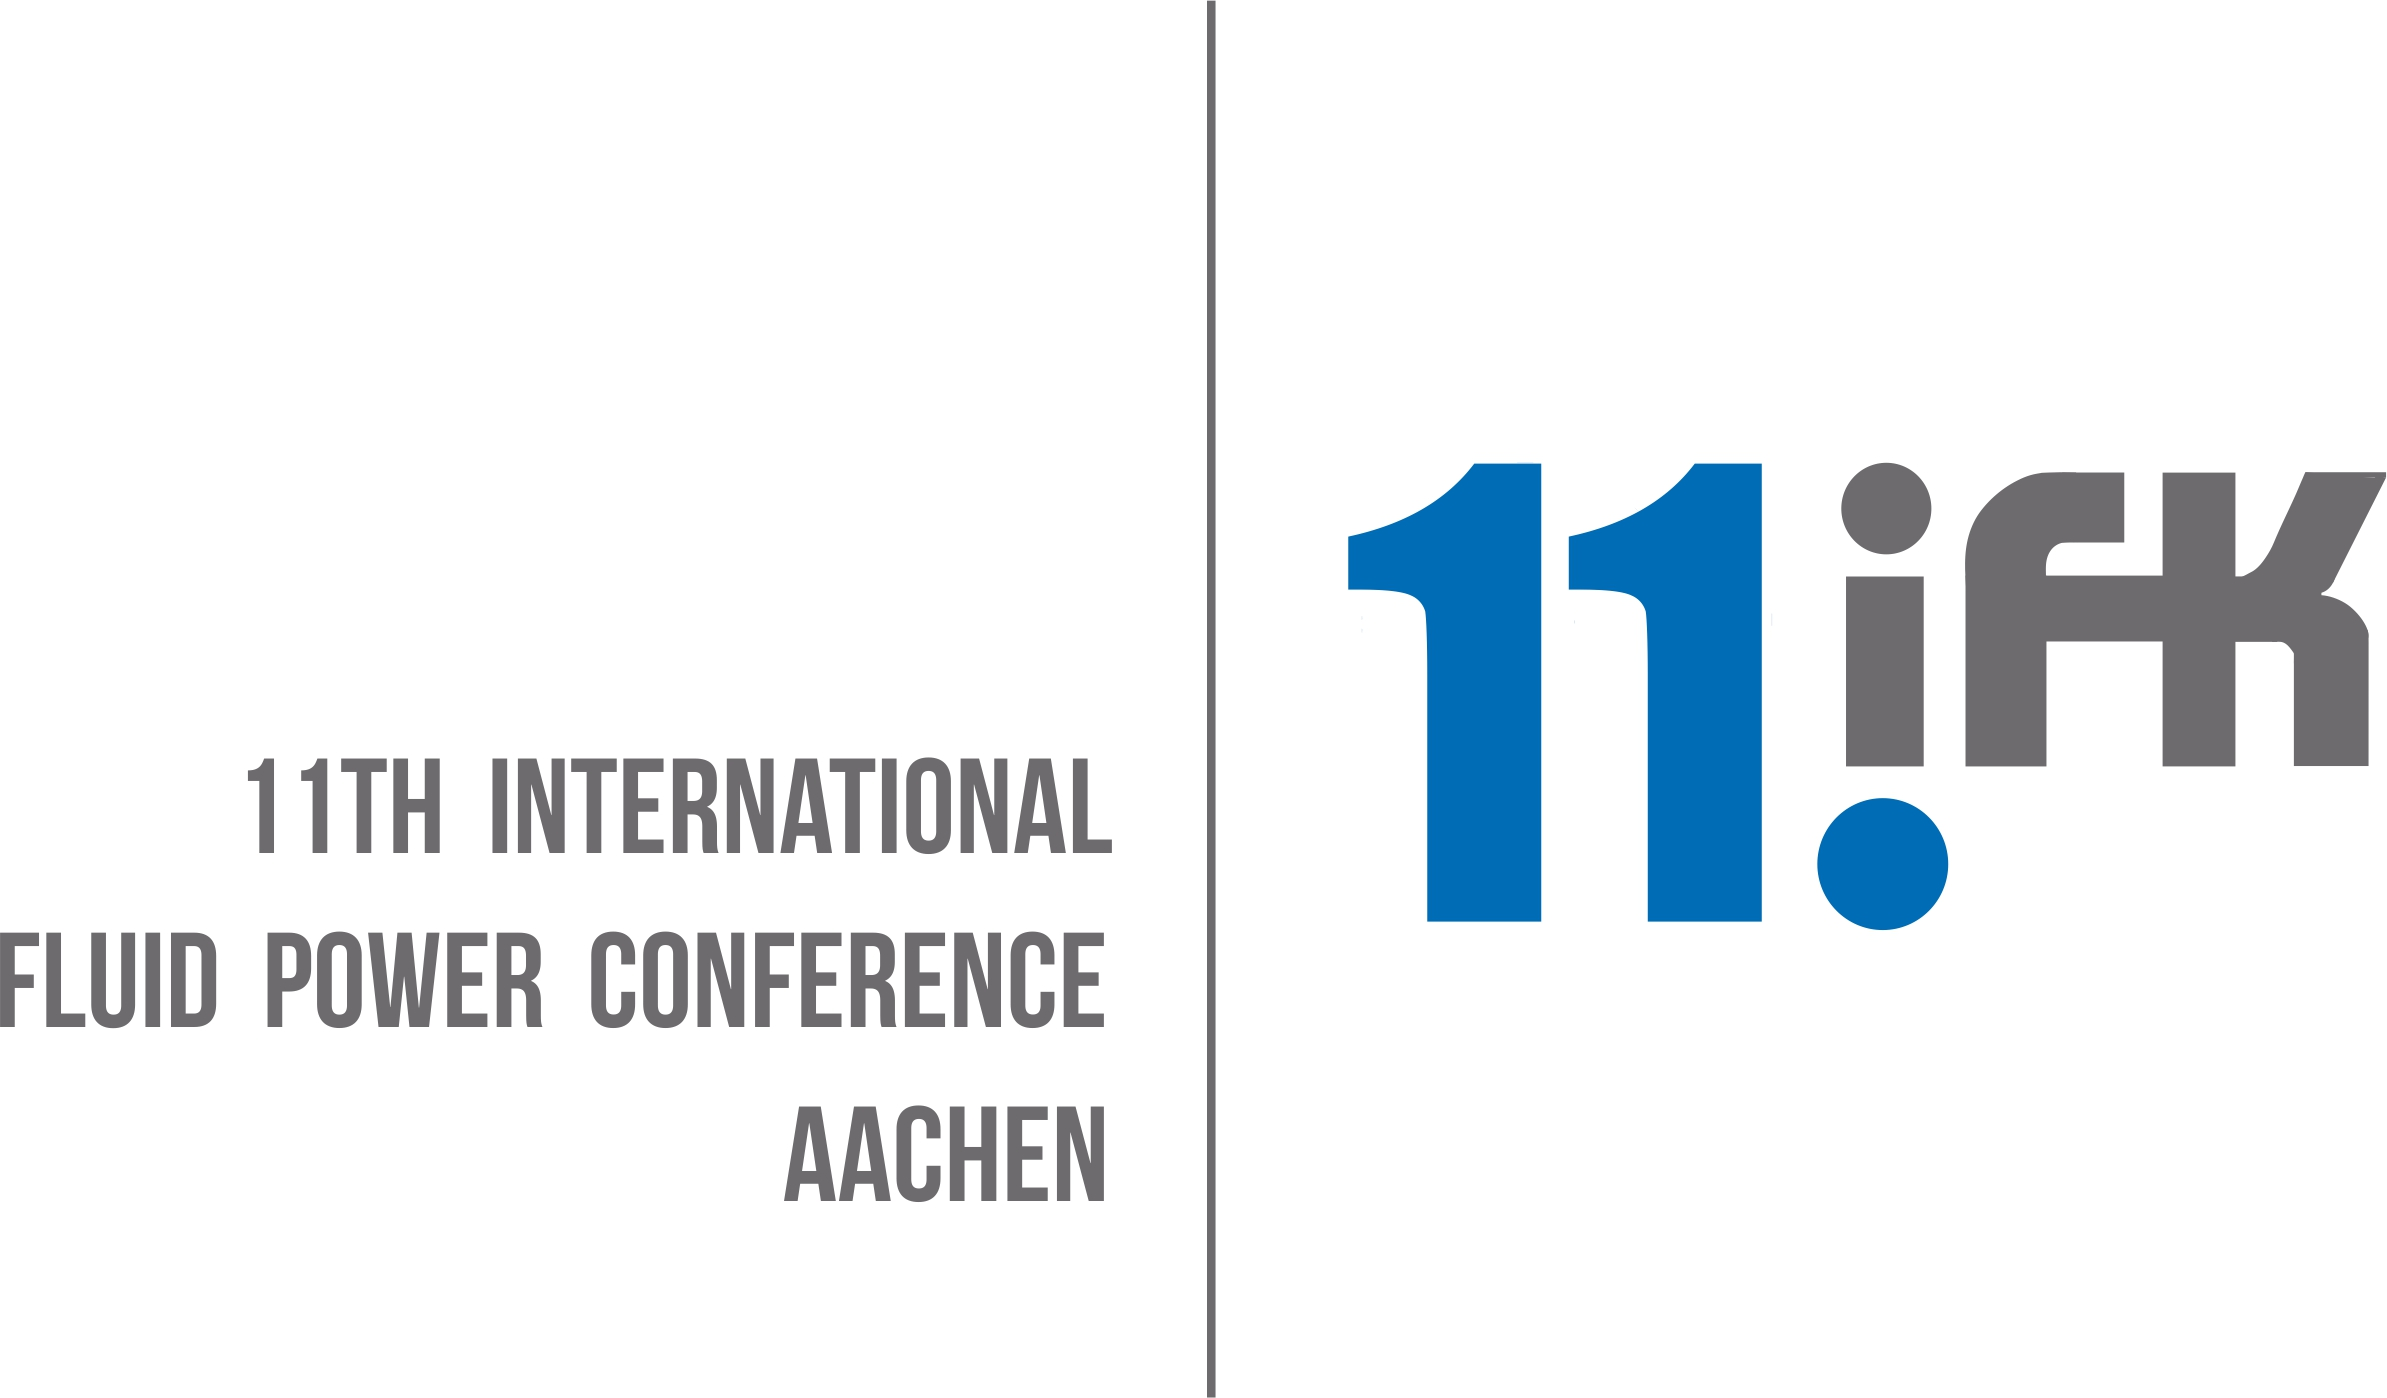 11th International Fluid Power Conference Aachen